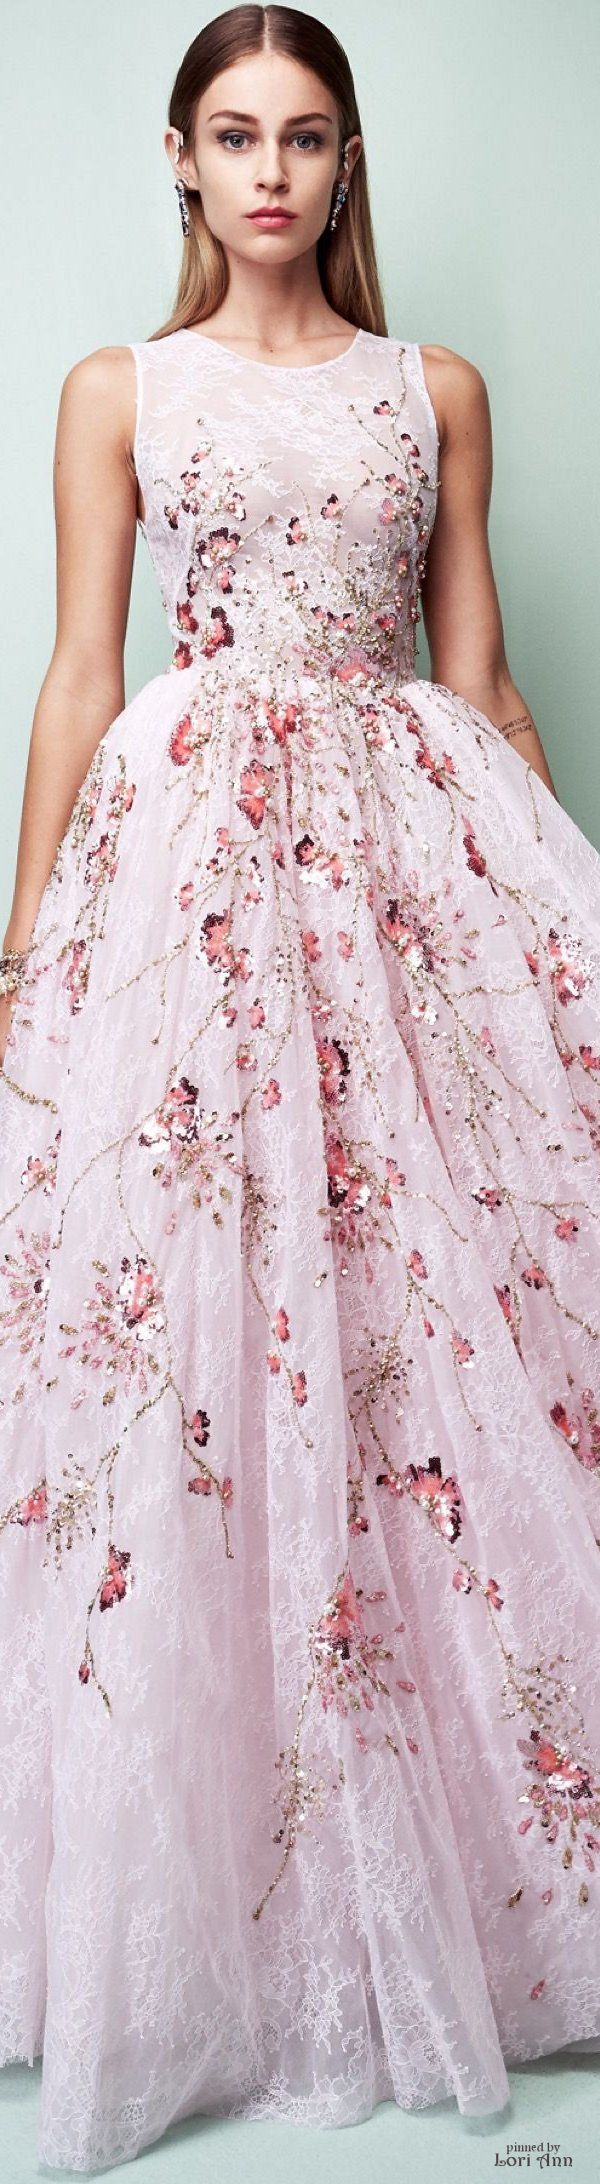 📍17 Best ideas about Garden Party Dresses on Pinterest | Floral ...